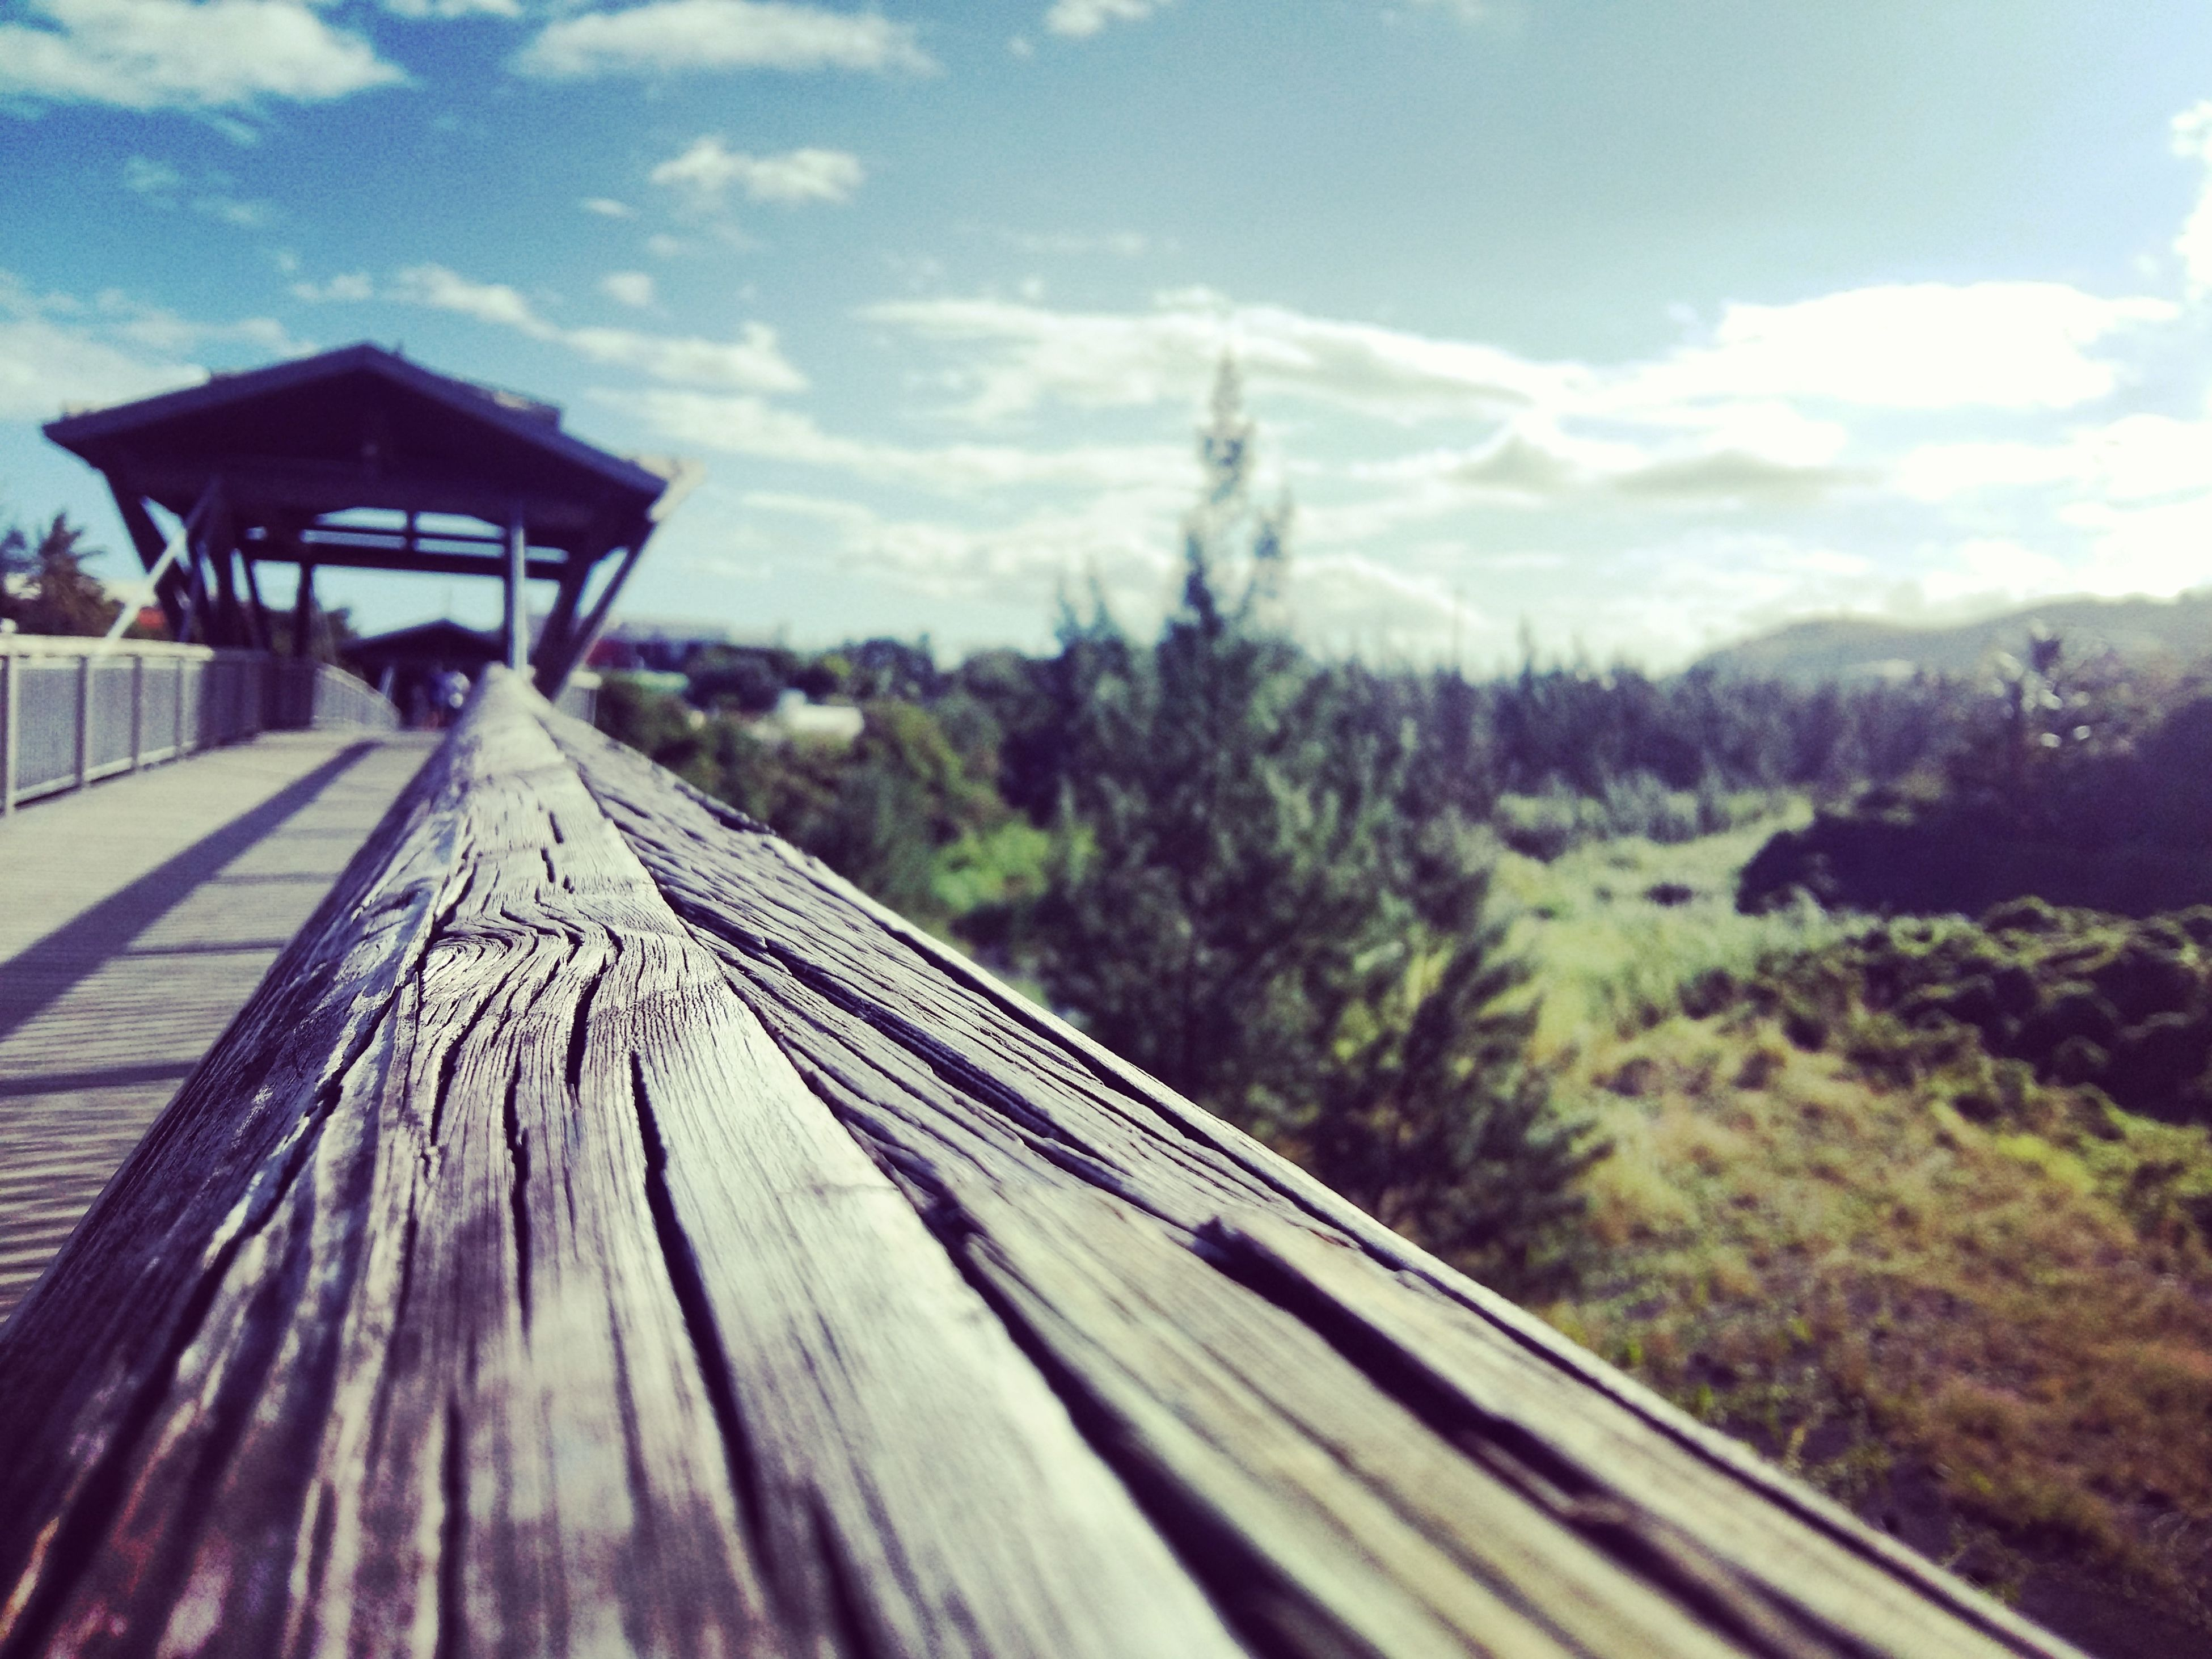 sky, wood - material, the way forward, tree, wooden, boardwalk, cloud - sky, wood, cloud, nature, railing, tranquility, selective focus, surface level, tranquil scene, day, outdoors, built structure, focus on foreground, diminishing perspective